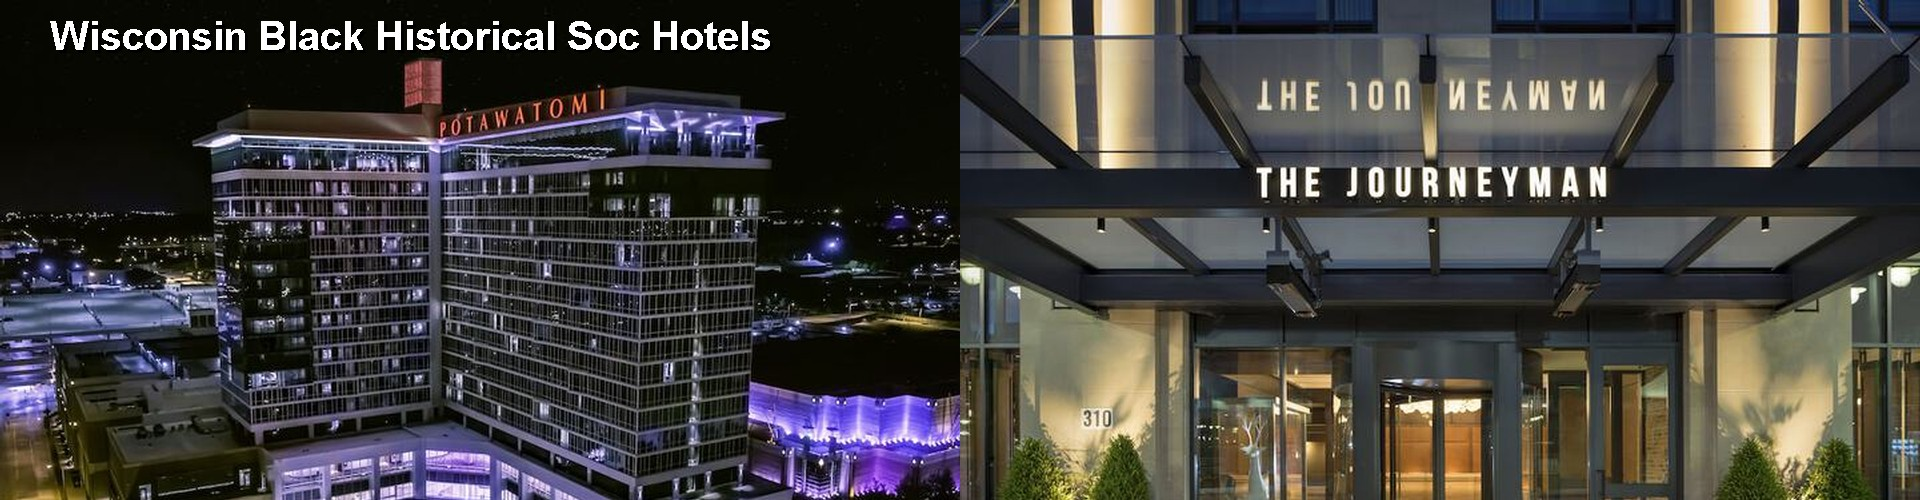 5 Best Hotels near Wisconsin Black Historical Soc